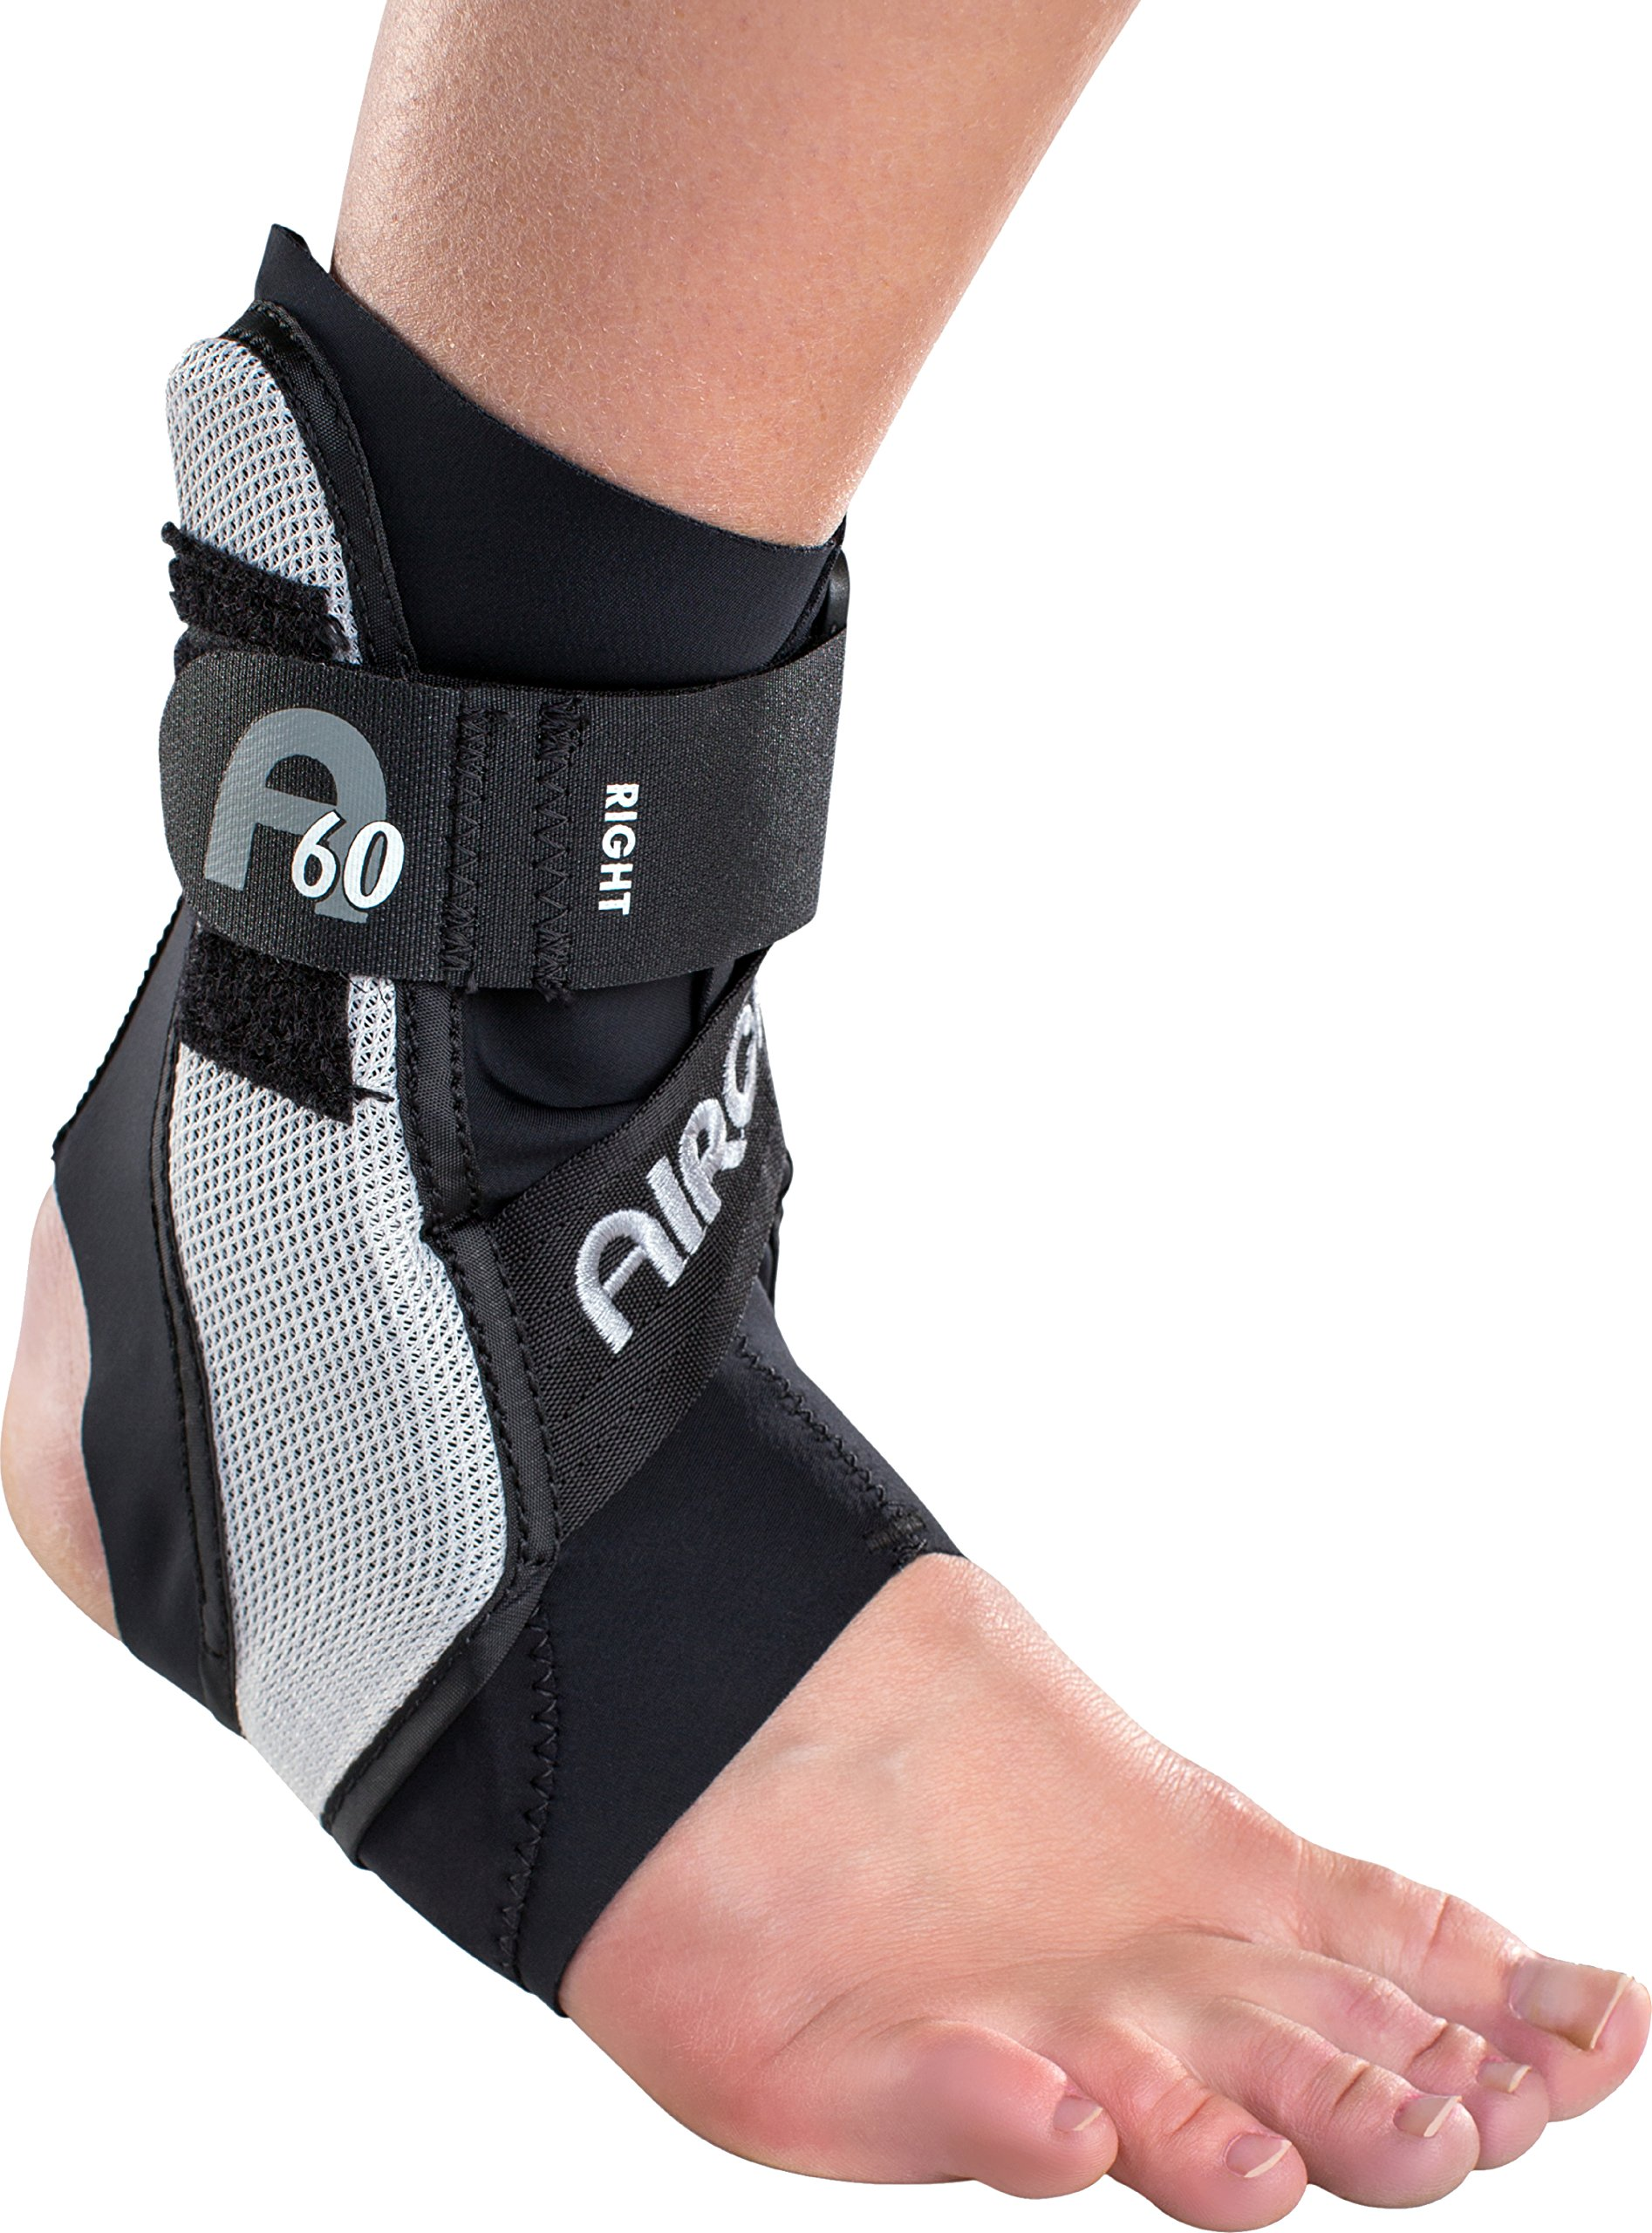 Aircast A60 Ankle Support Brace, Right Foot, Black, Medium (Shoe Size: Men's 7.5 - 11.5 / Women's 9 - 13)